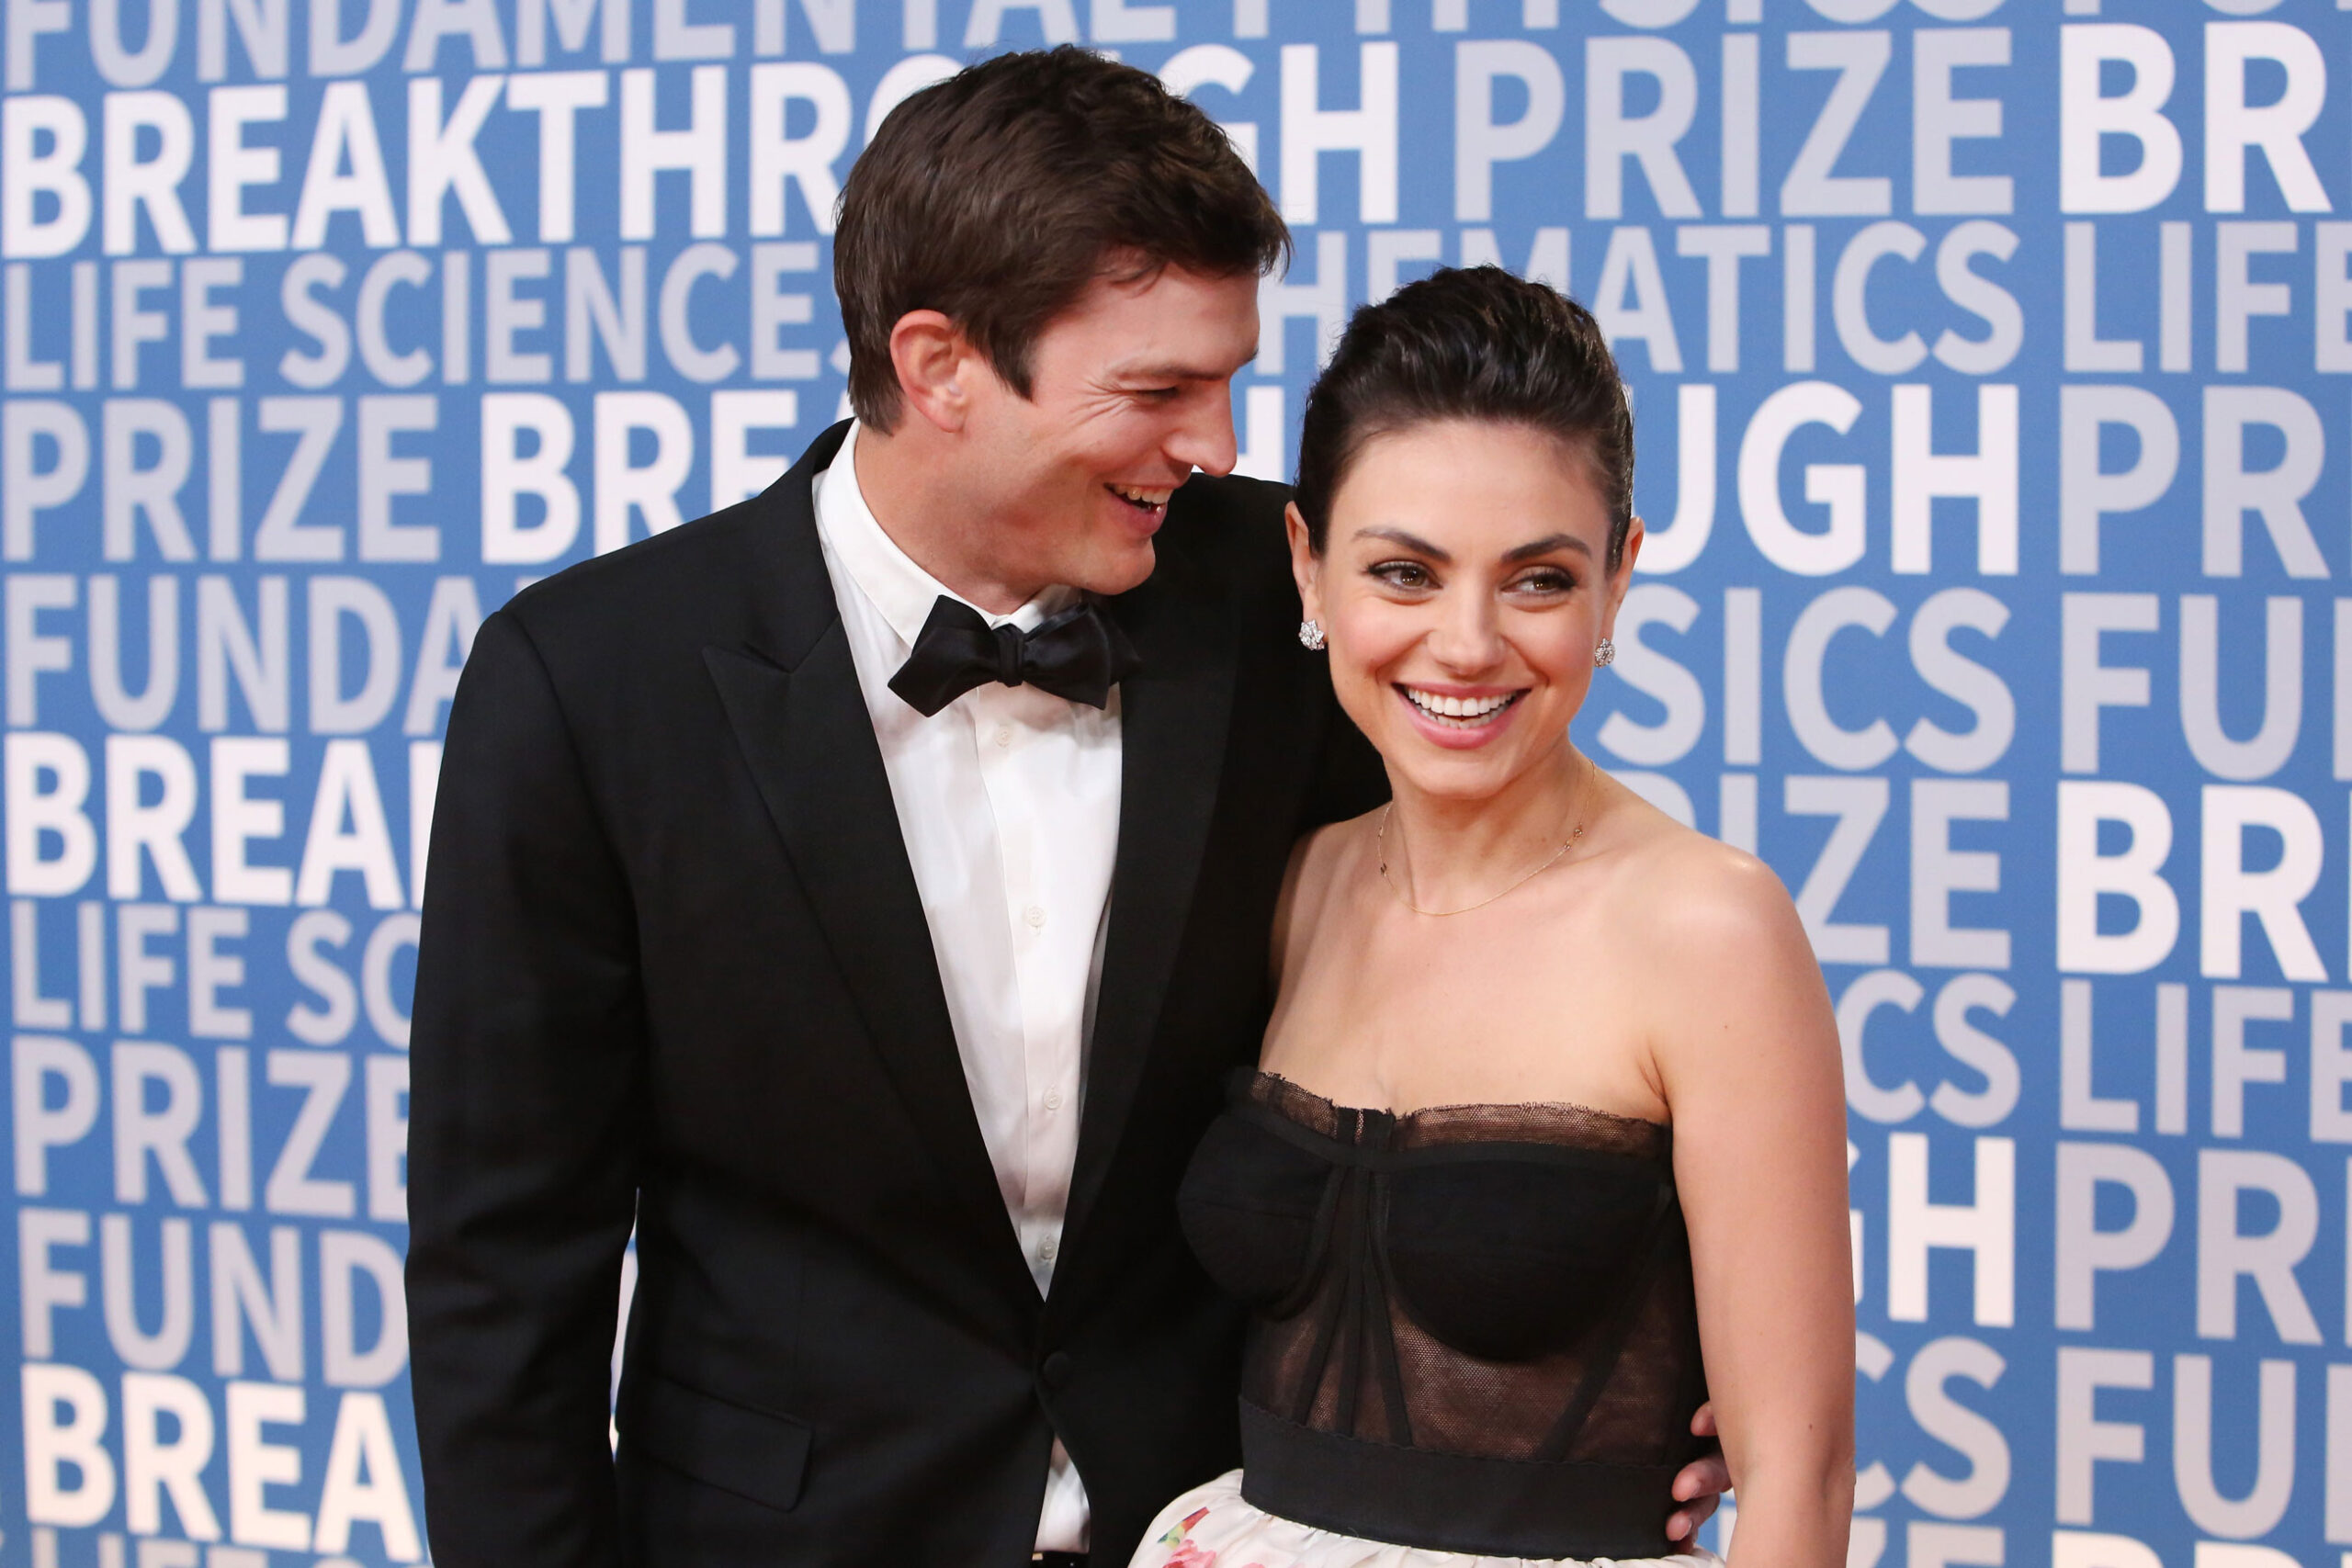 <i>Jesse Grant/Getty Images</i><br/>(From left) Ashton Kutcher and Mila Kunis said recently they do not bathe themselves or their kids too often.